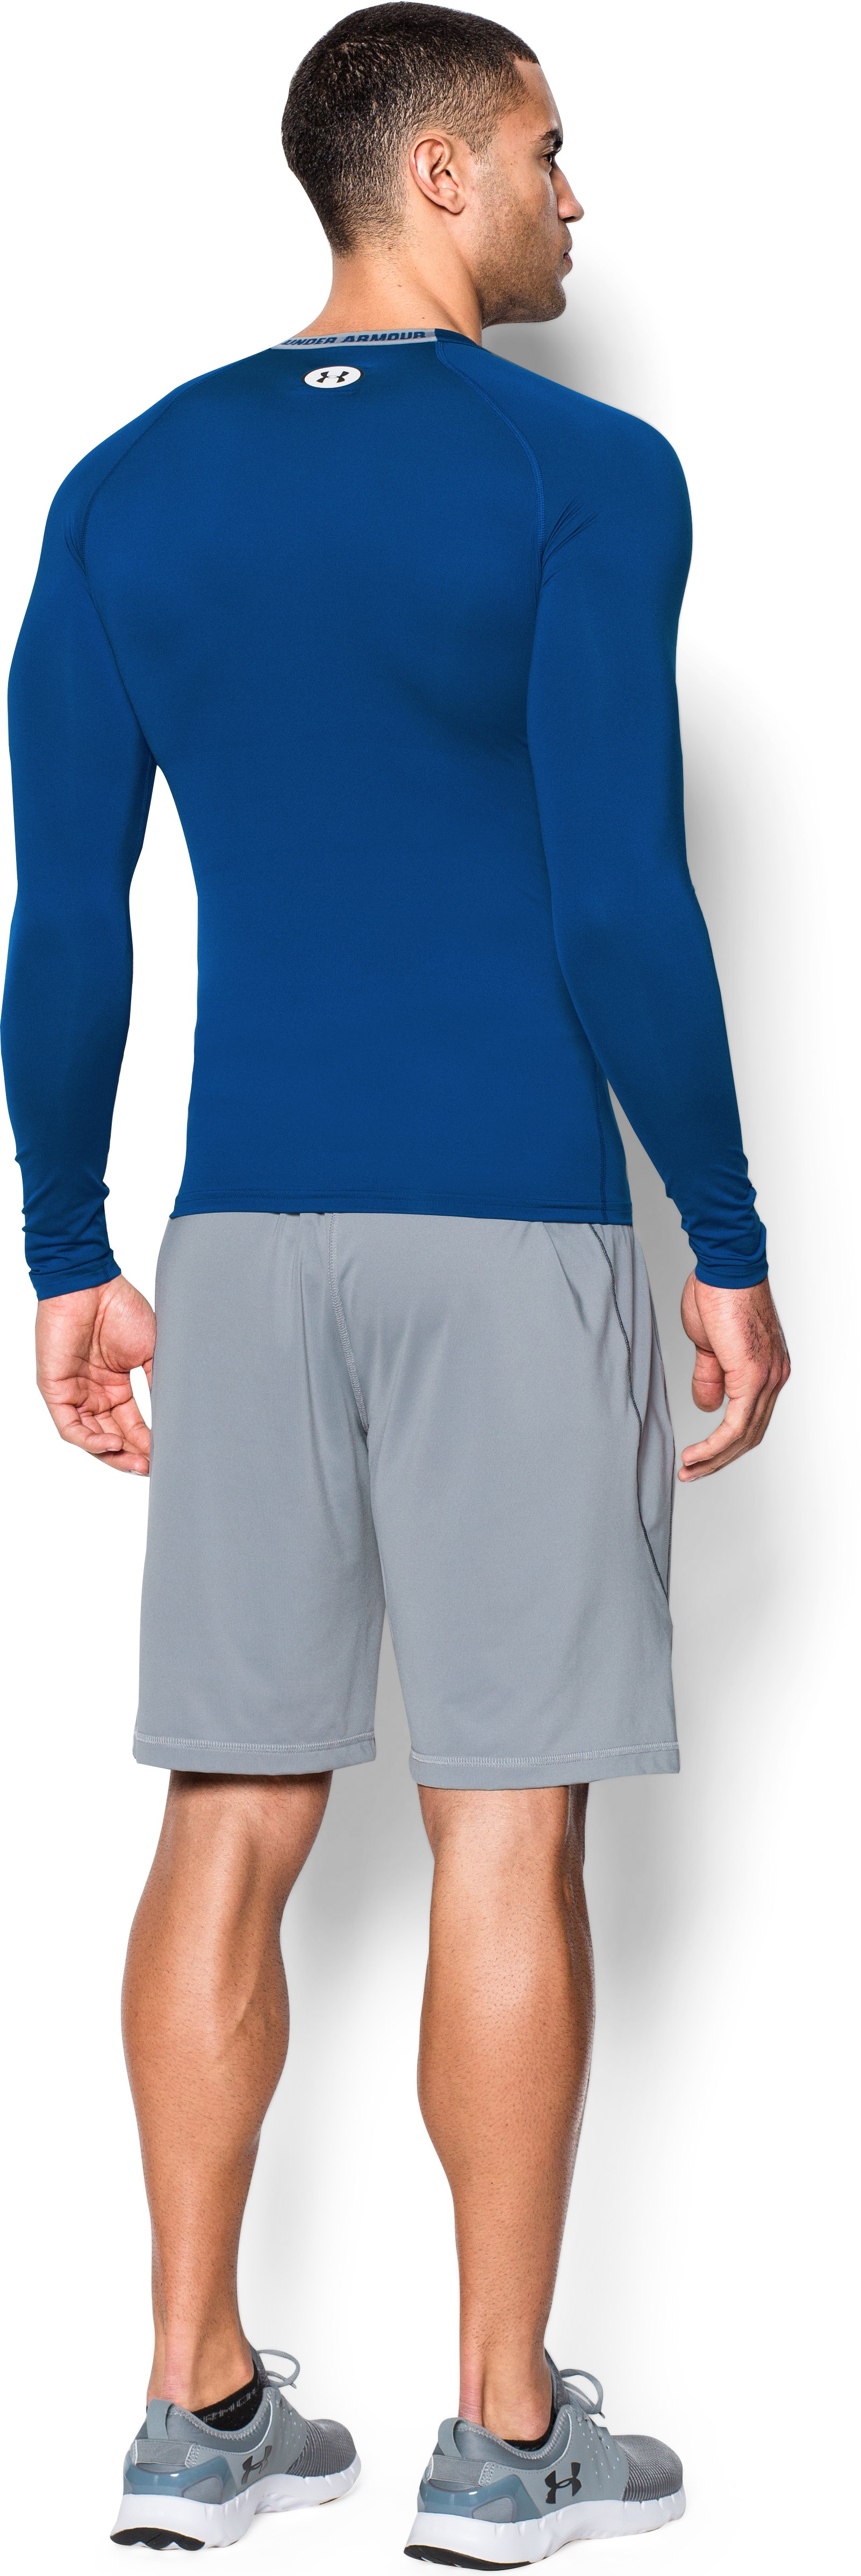 Men's HeatGear® Sonic Compression Long Sleeve, Royal, Back